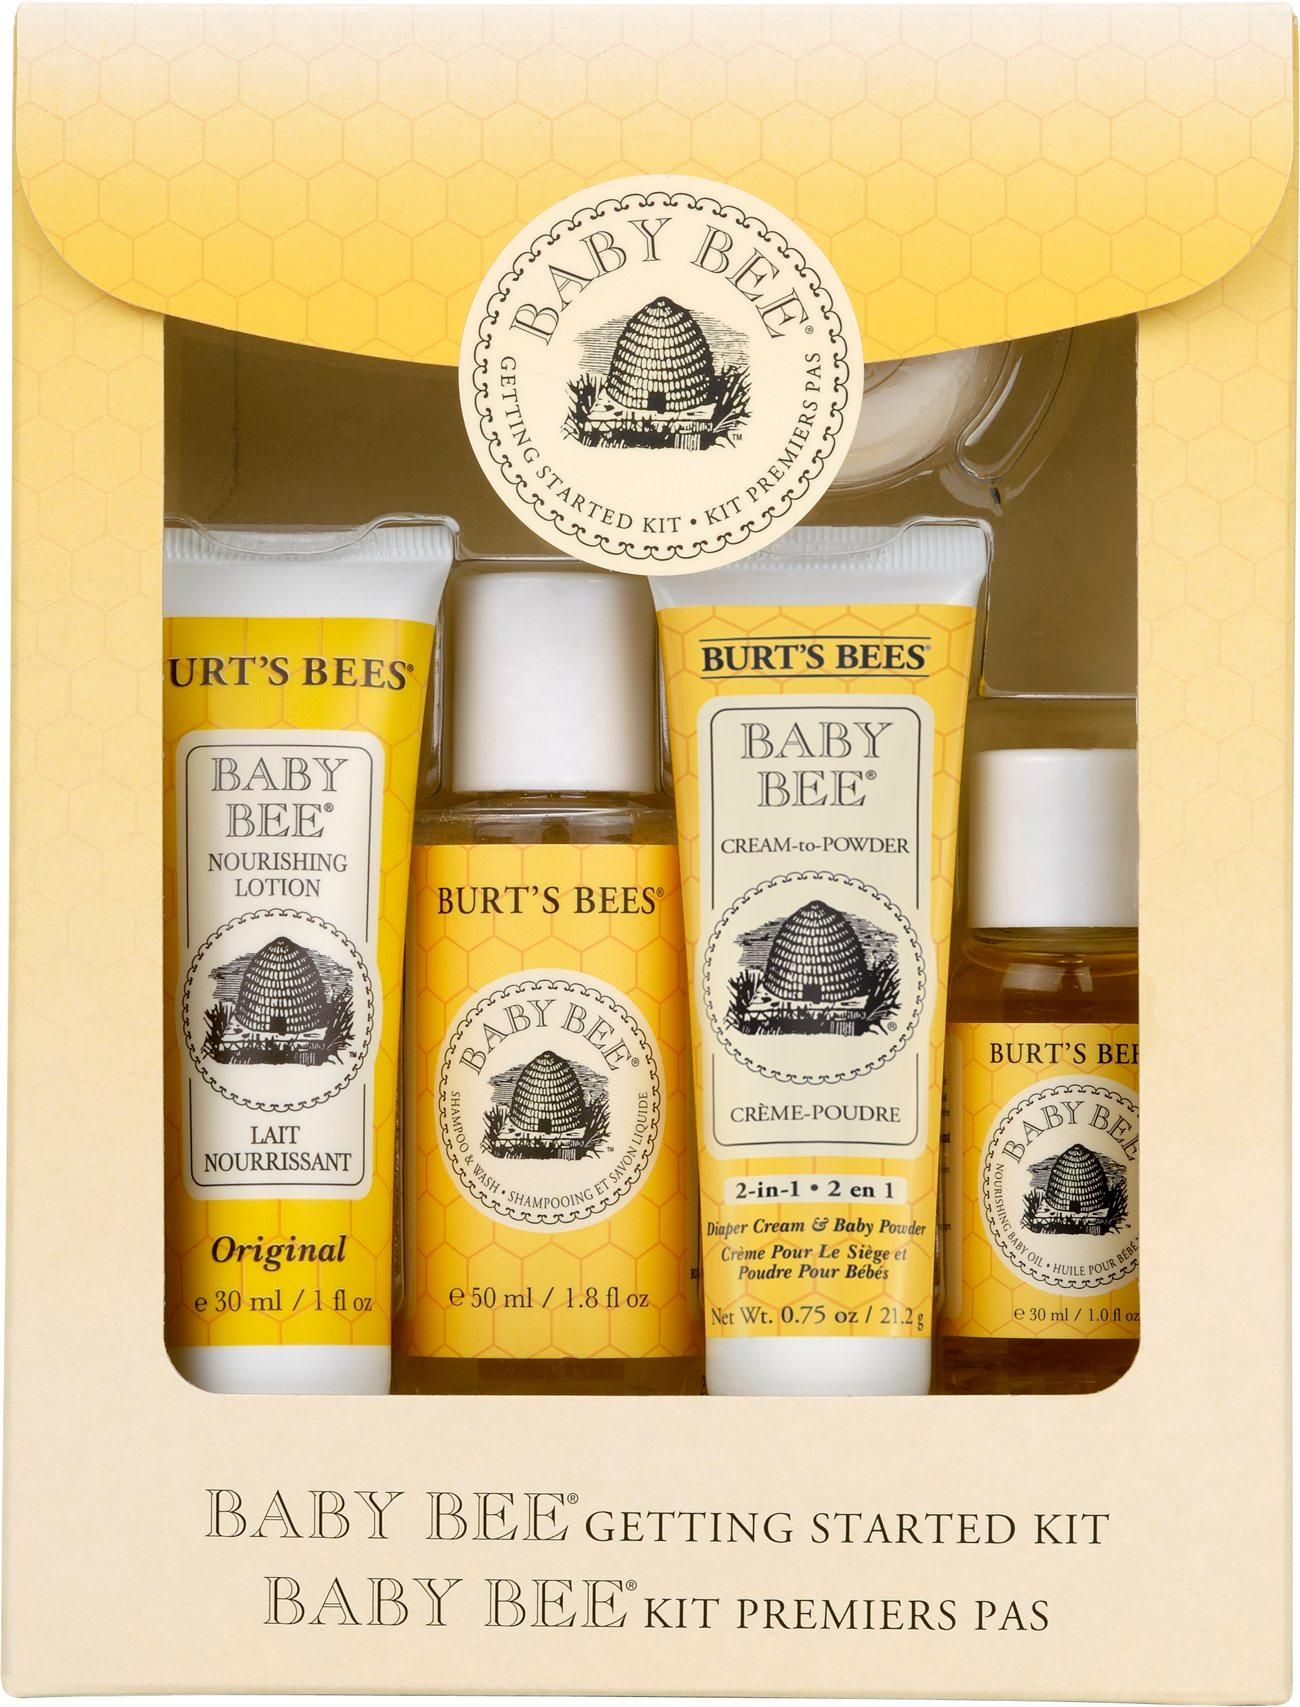 902f06251fc4 burts bee gift set gifts for her under  20  burt bee gift set travel ...